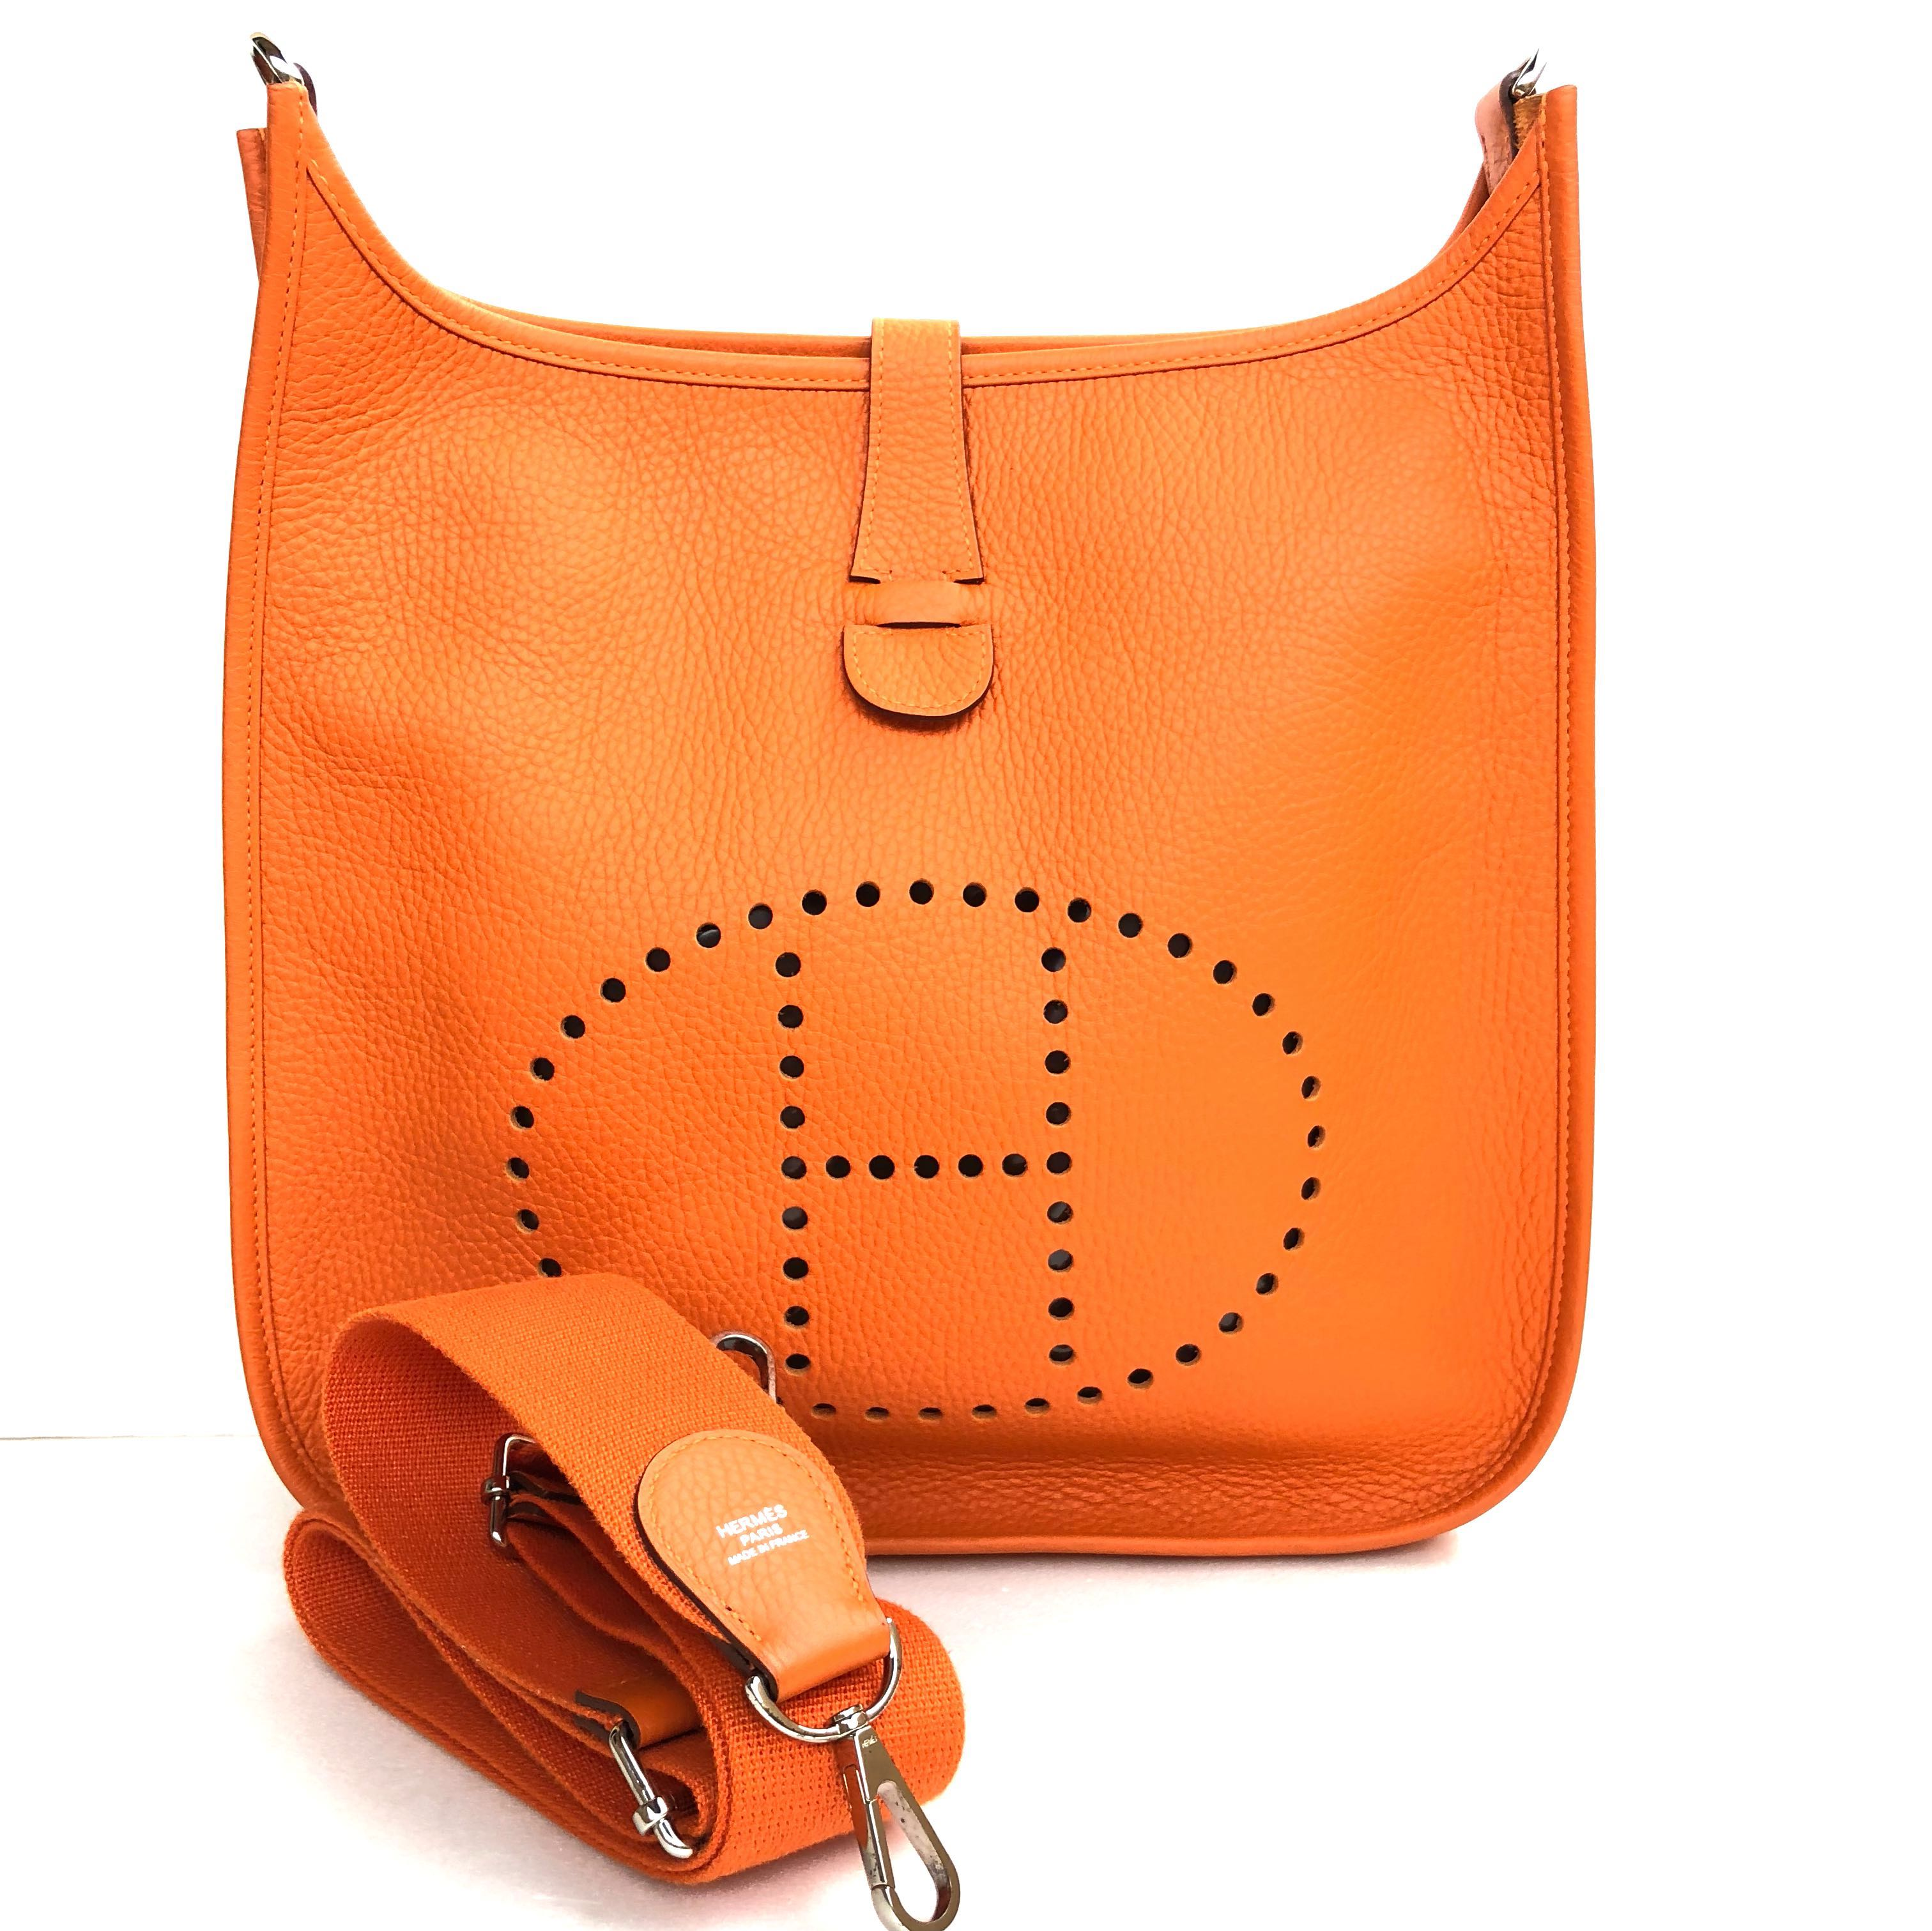 f23f54bc8240 Hermes - Orange Evelyne III GM 33 in Taurillon Clémence with PHW ...